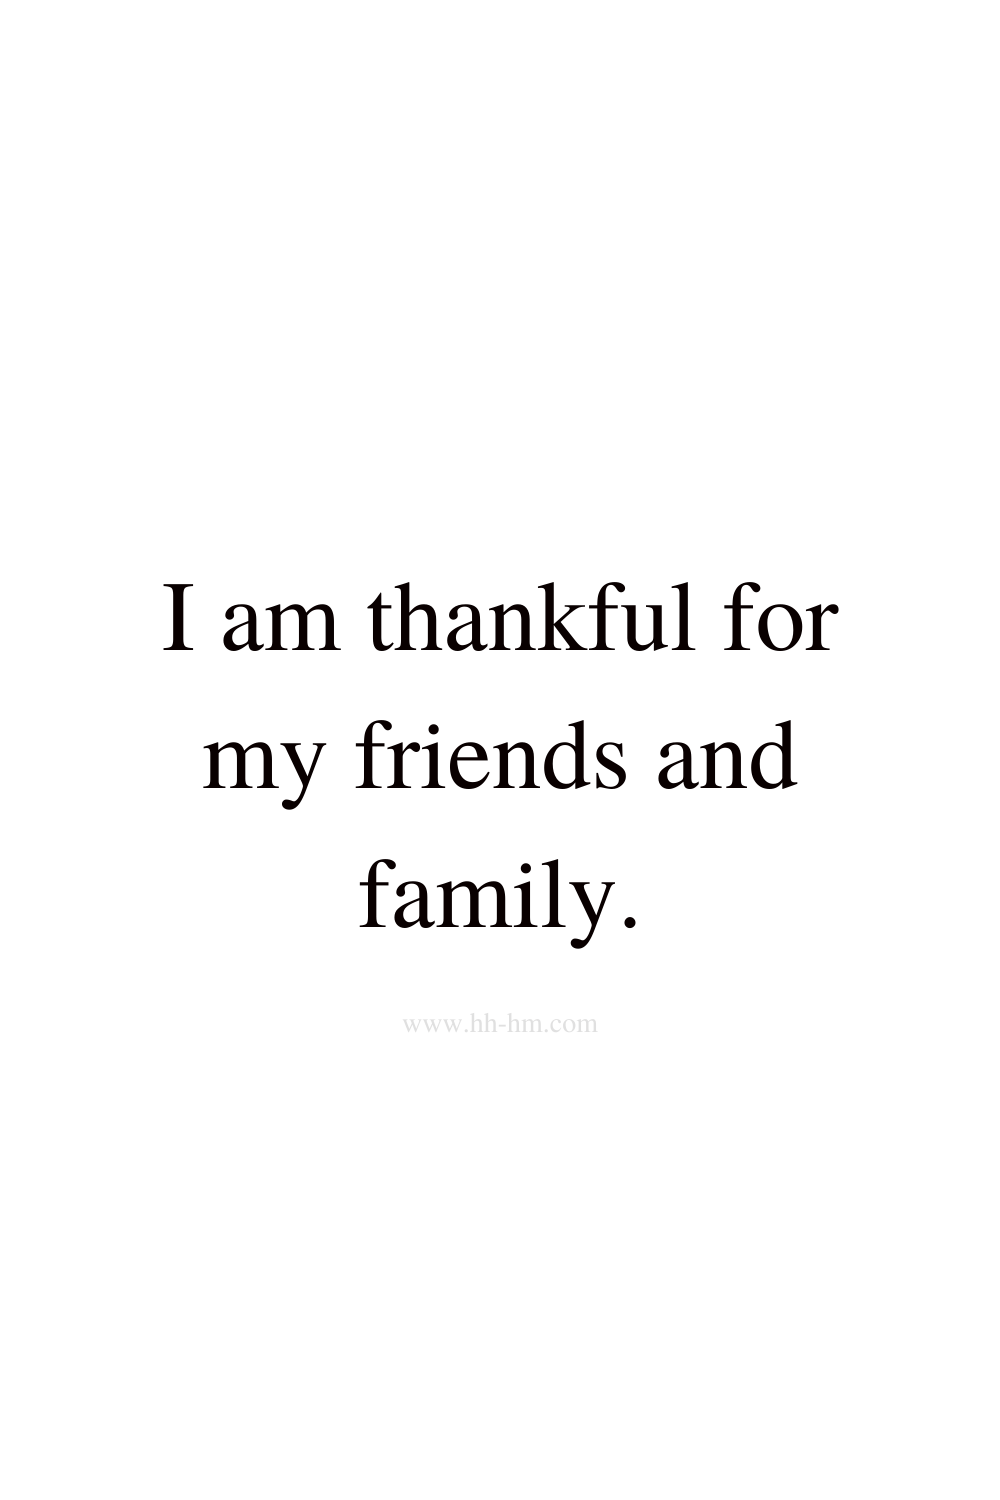 I am thankful for my friends and family I am excited about today - short positive affirmations for happiness